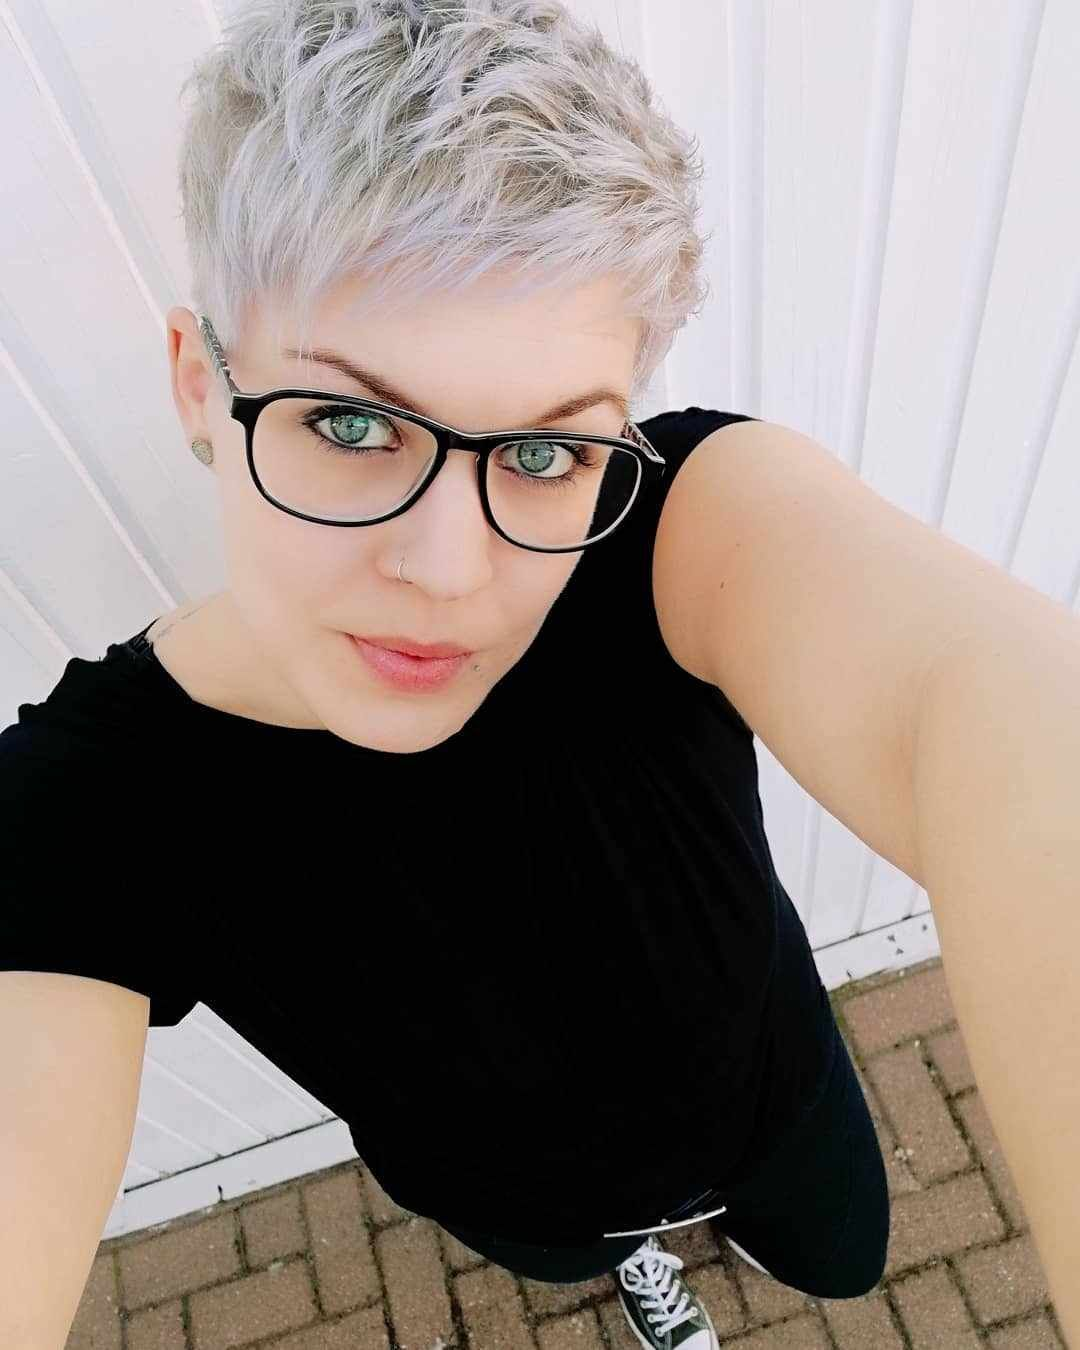 60 Favorite Short Hairstyles For Special Occasions Bobhair Hair Pixie Pixiehaircut Pixiehairstyl Short Thin Hair Long Face Hairstyles Short Hair Styles